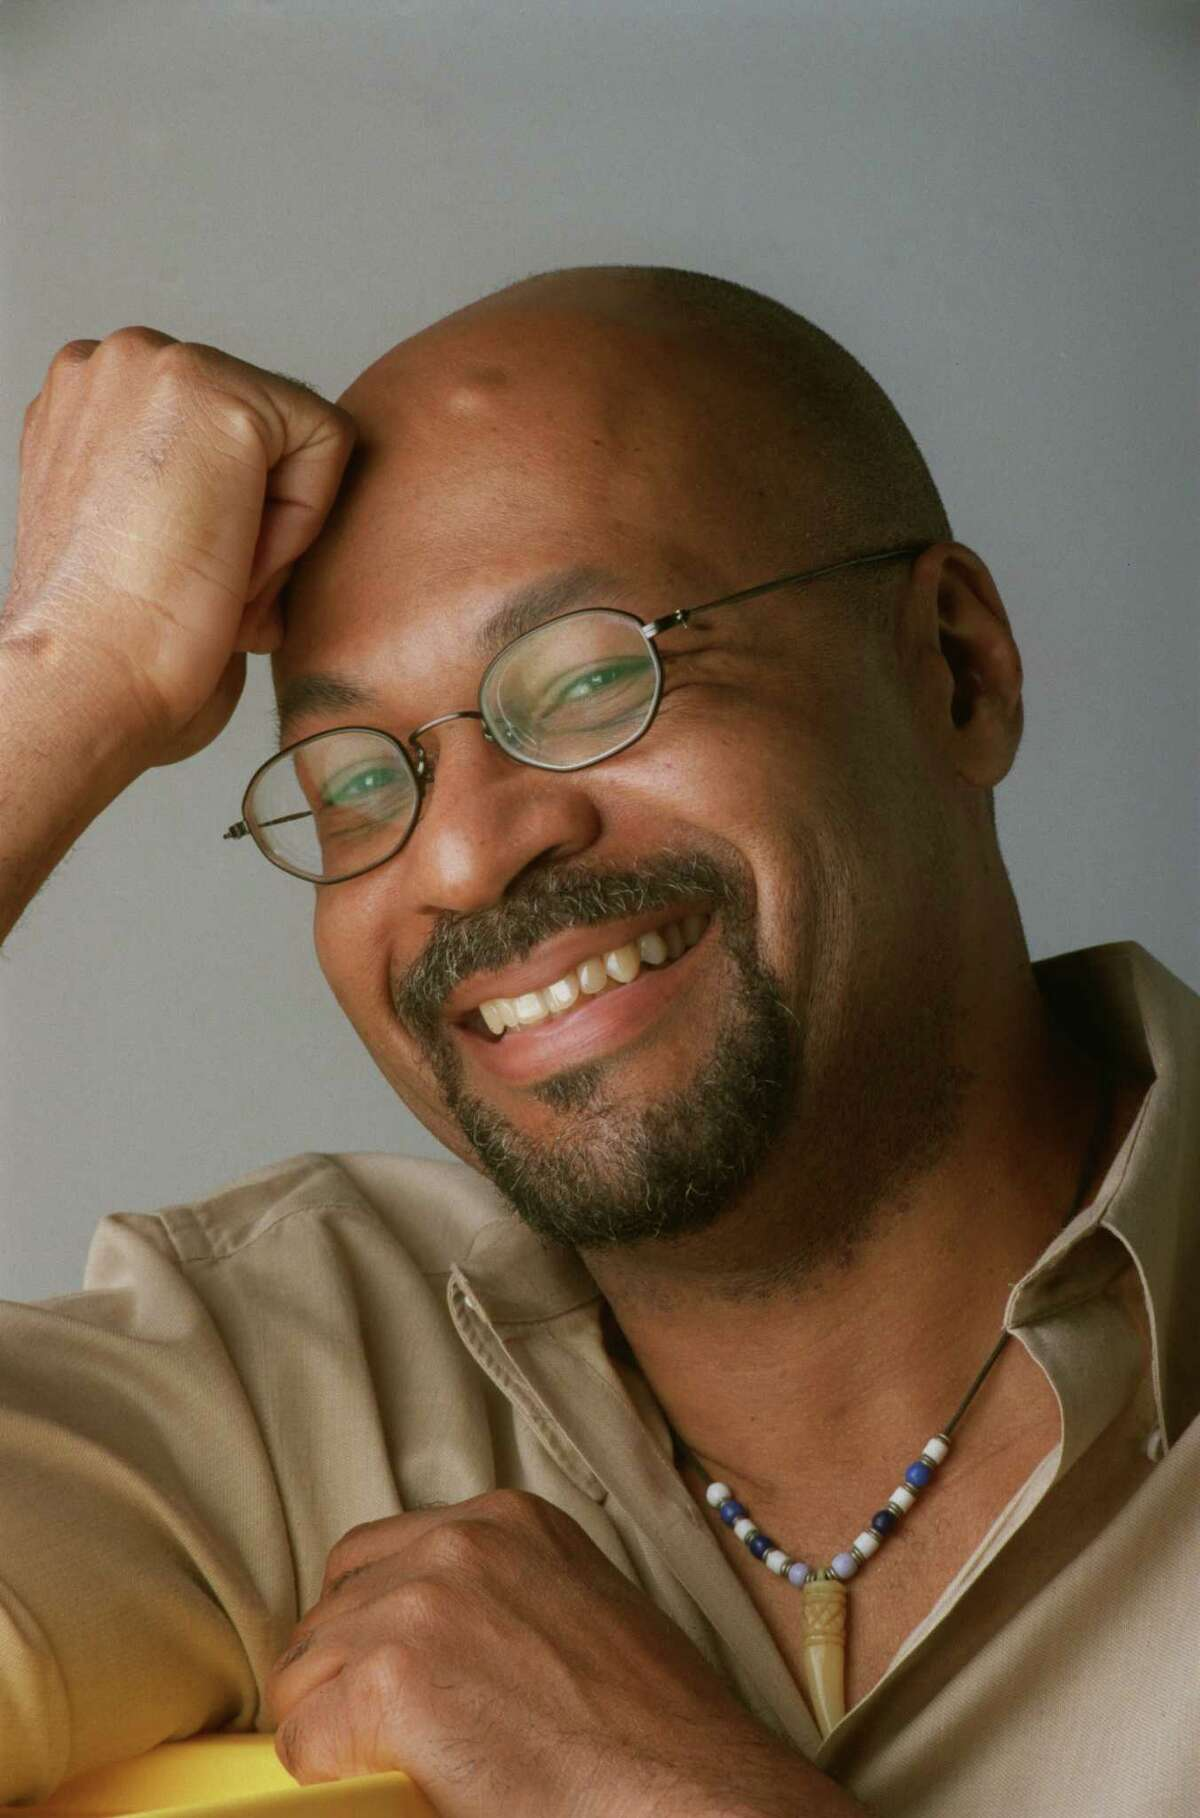 Eric Harrison, who served as the Houston Chronicle's film reviewer from 2000 to 2005, died Saturday, Nov. 16, 2013. He was 57.